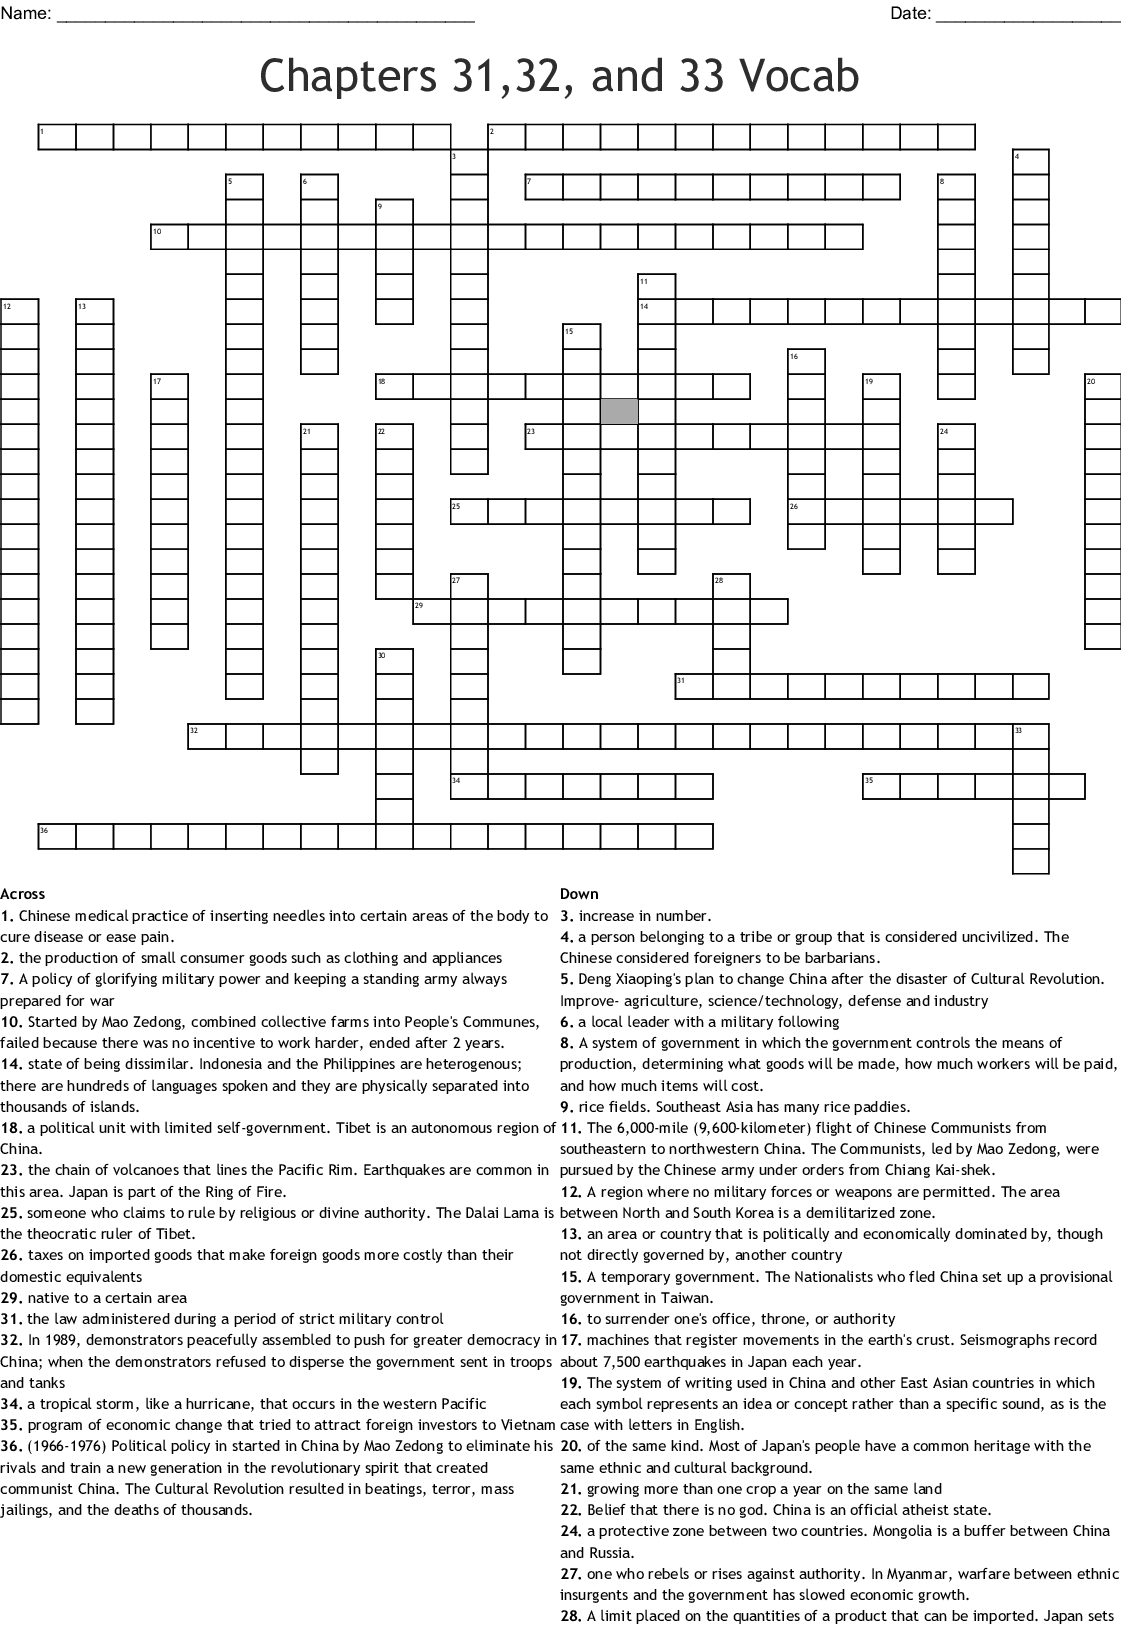 Chapters 31 32 And 33 Vocab Crossword